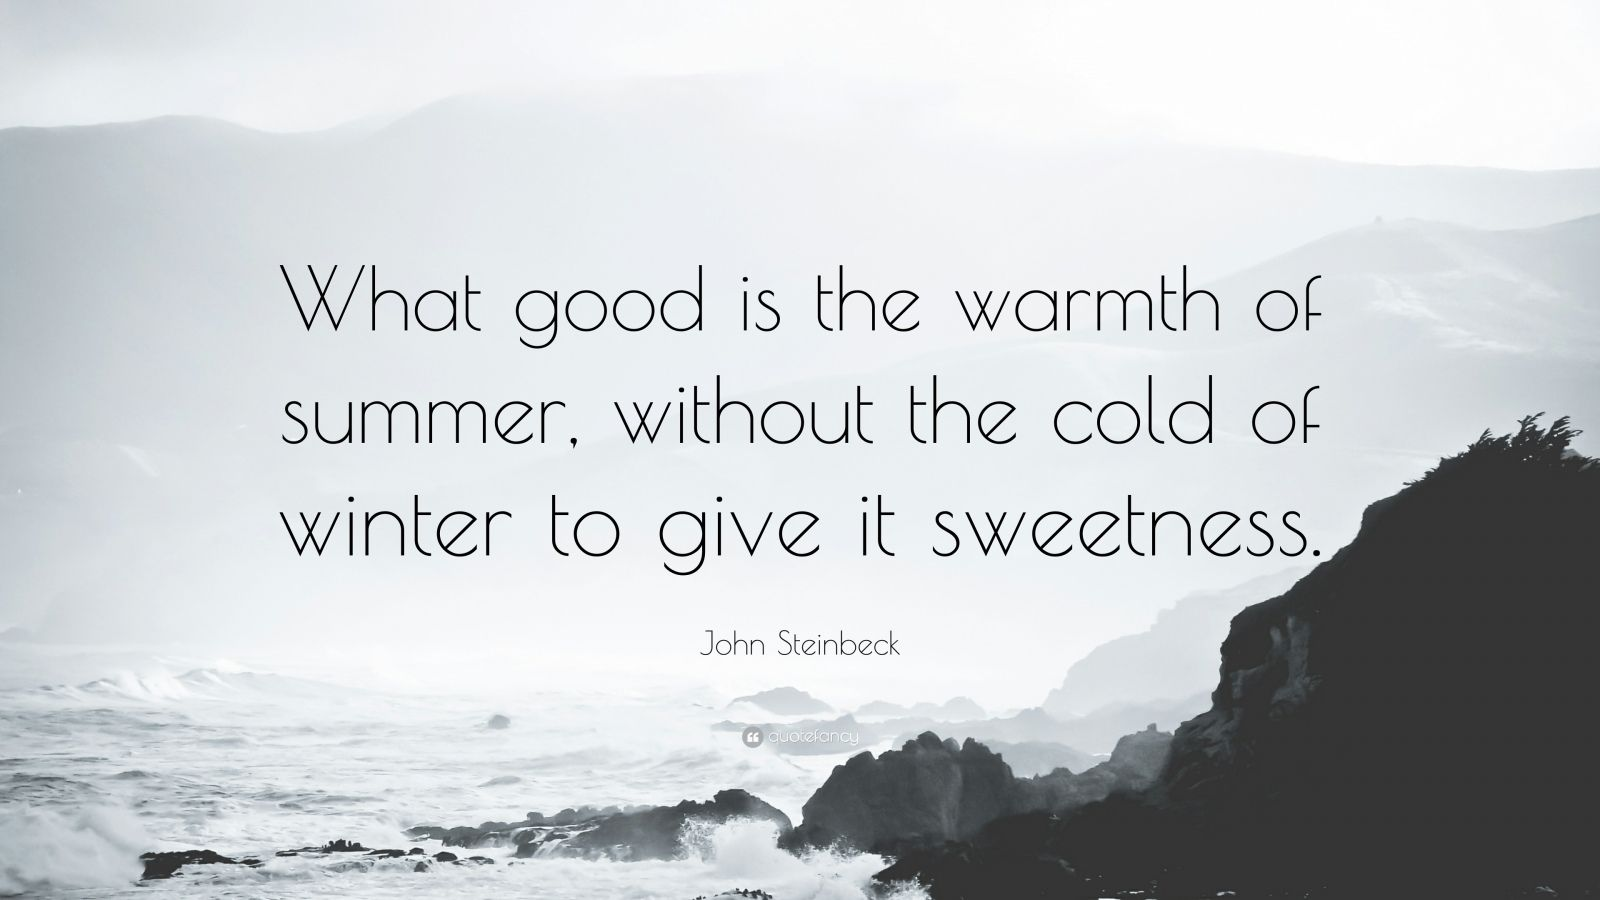 """John Steinbeck Quote: """"What good is the warmth of summer, without the cold of winter to give it sweetness."""""""